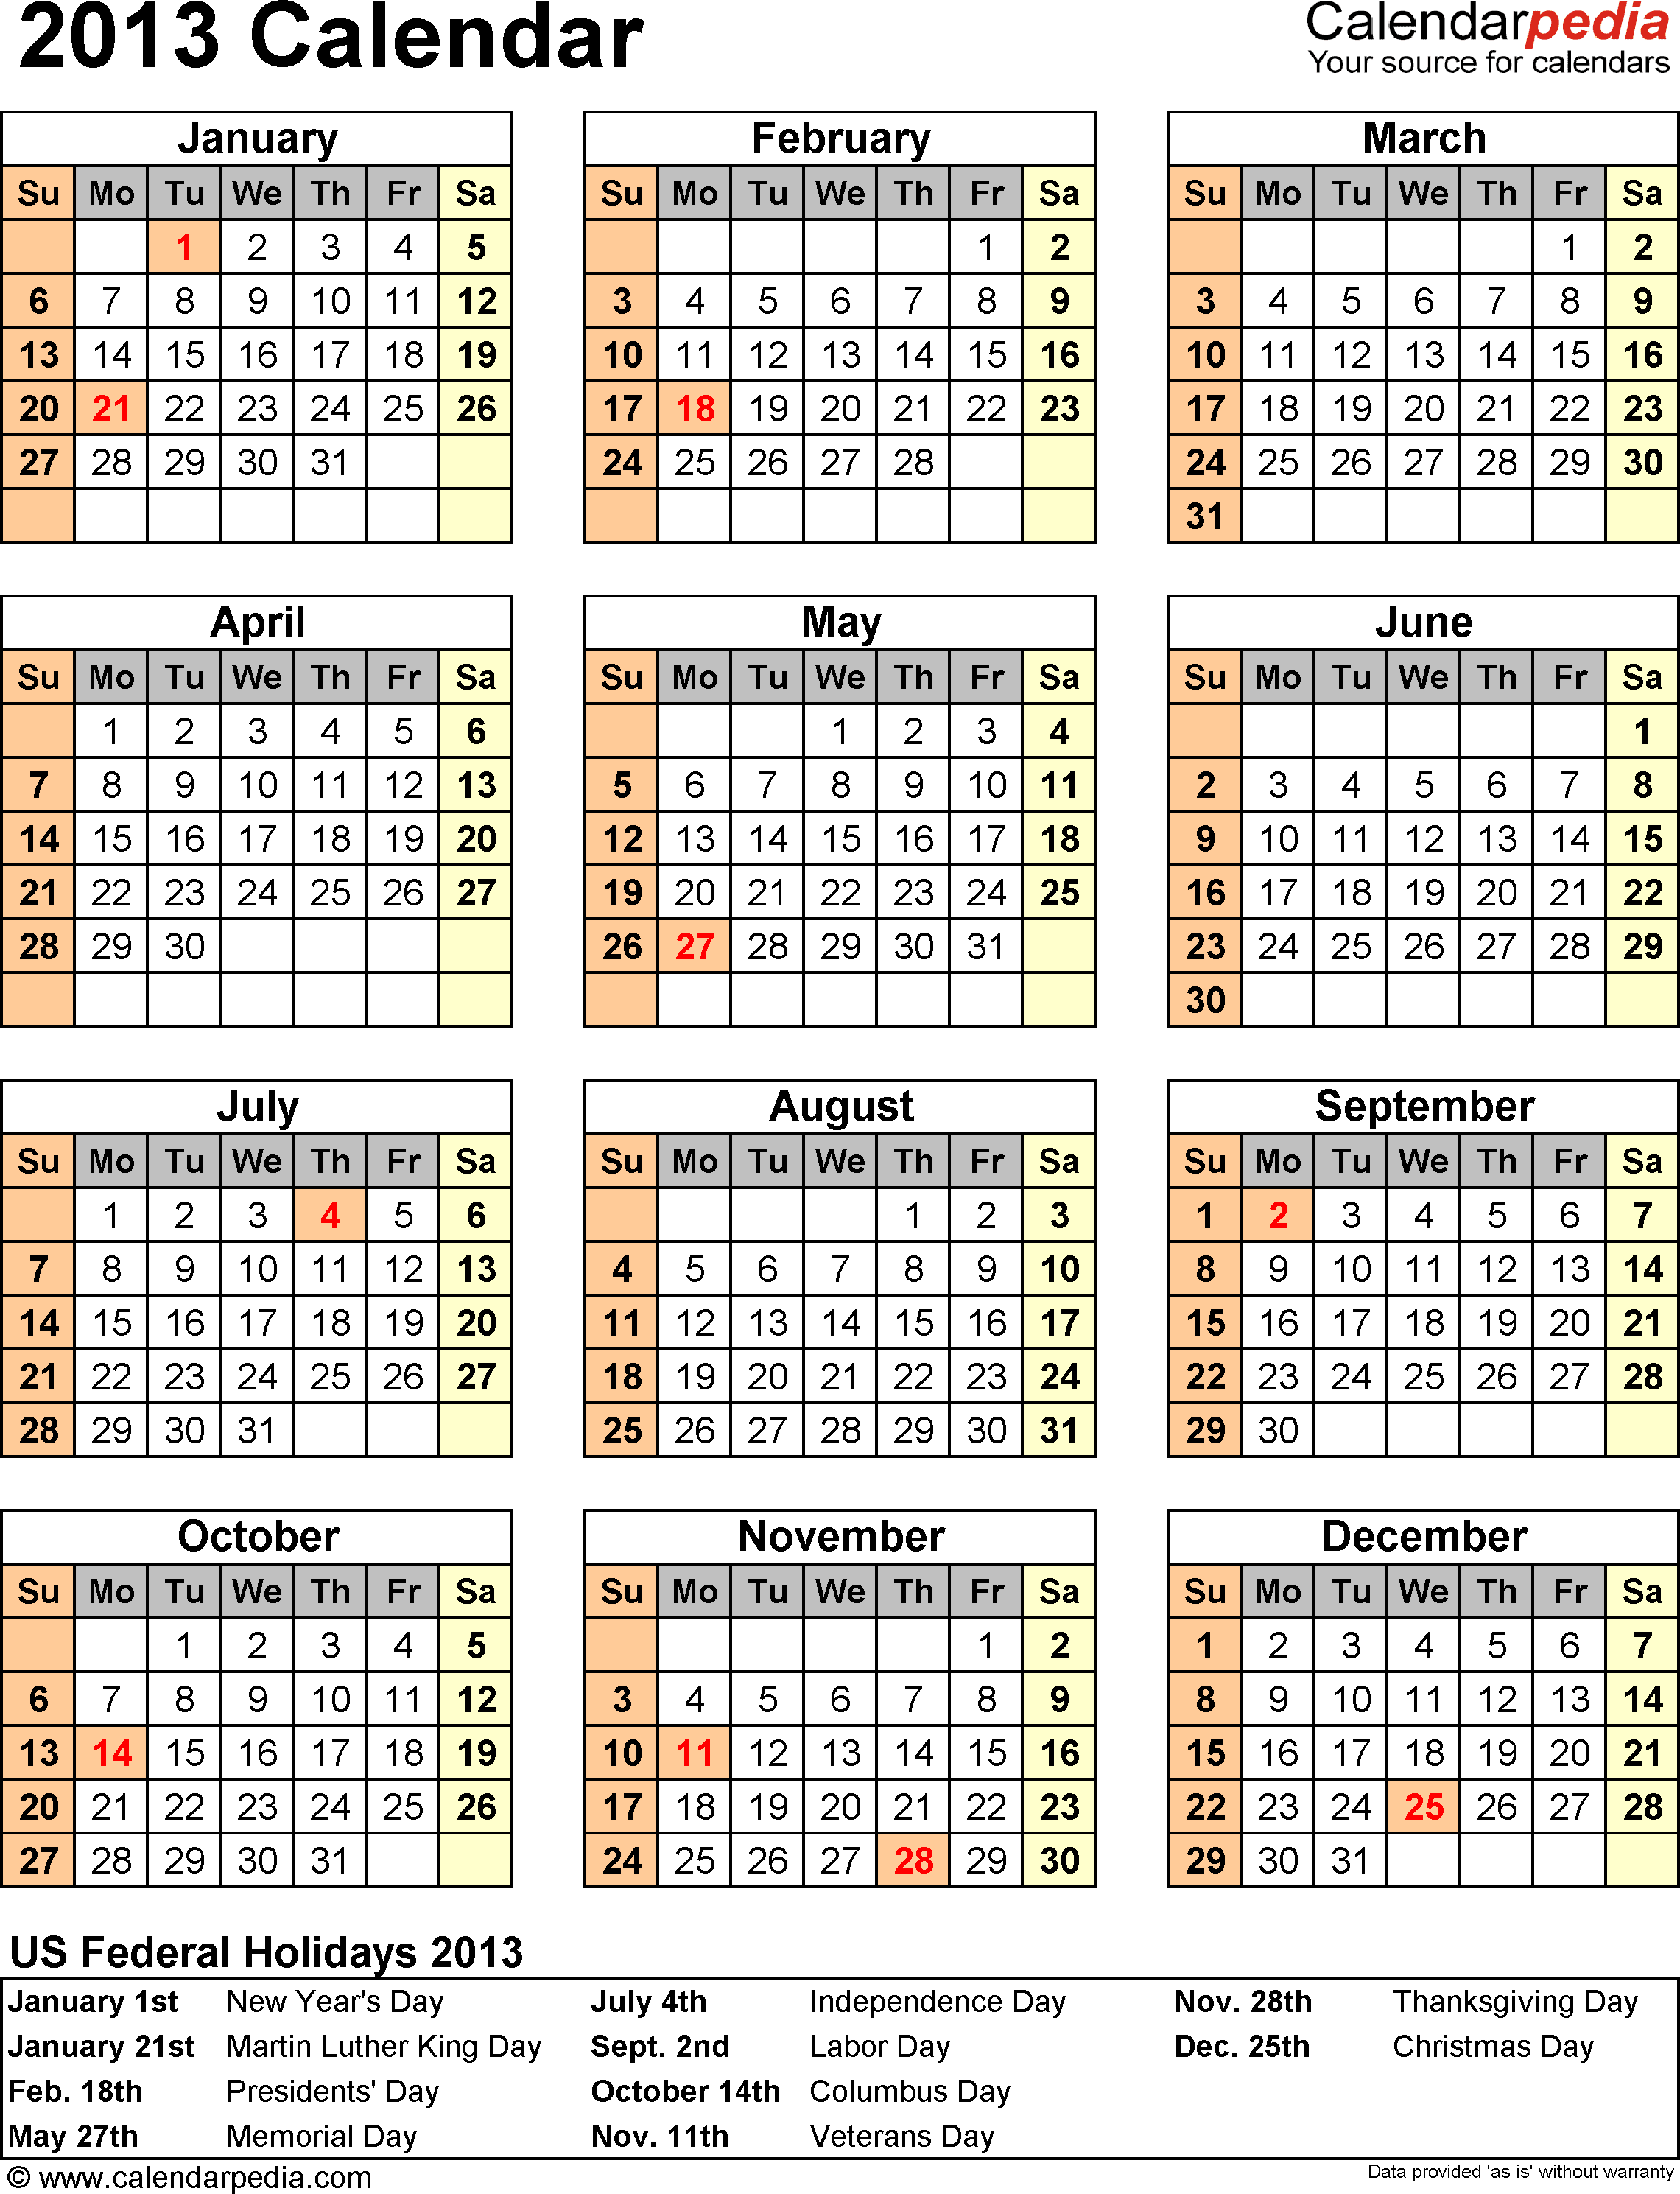 Download PDF template for 2013 calendar template 11: portrait orientation, 1 page, with US federal holidays 2013, paper format: US letter